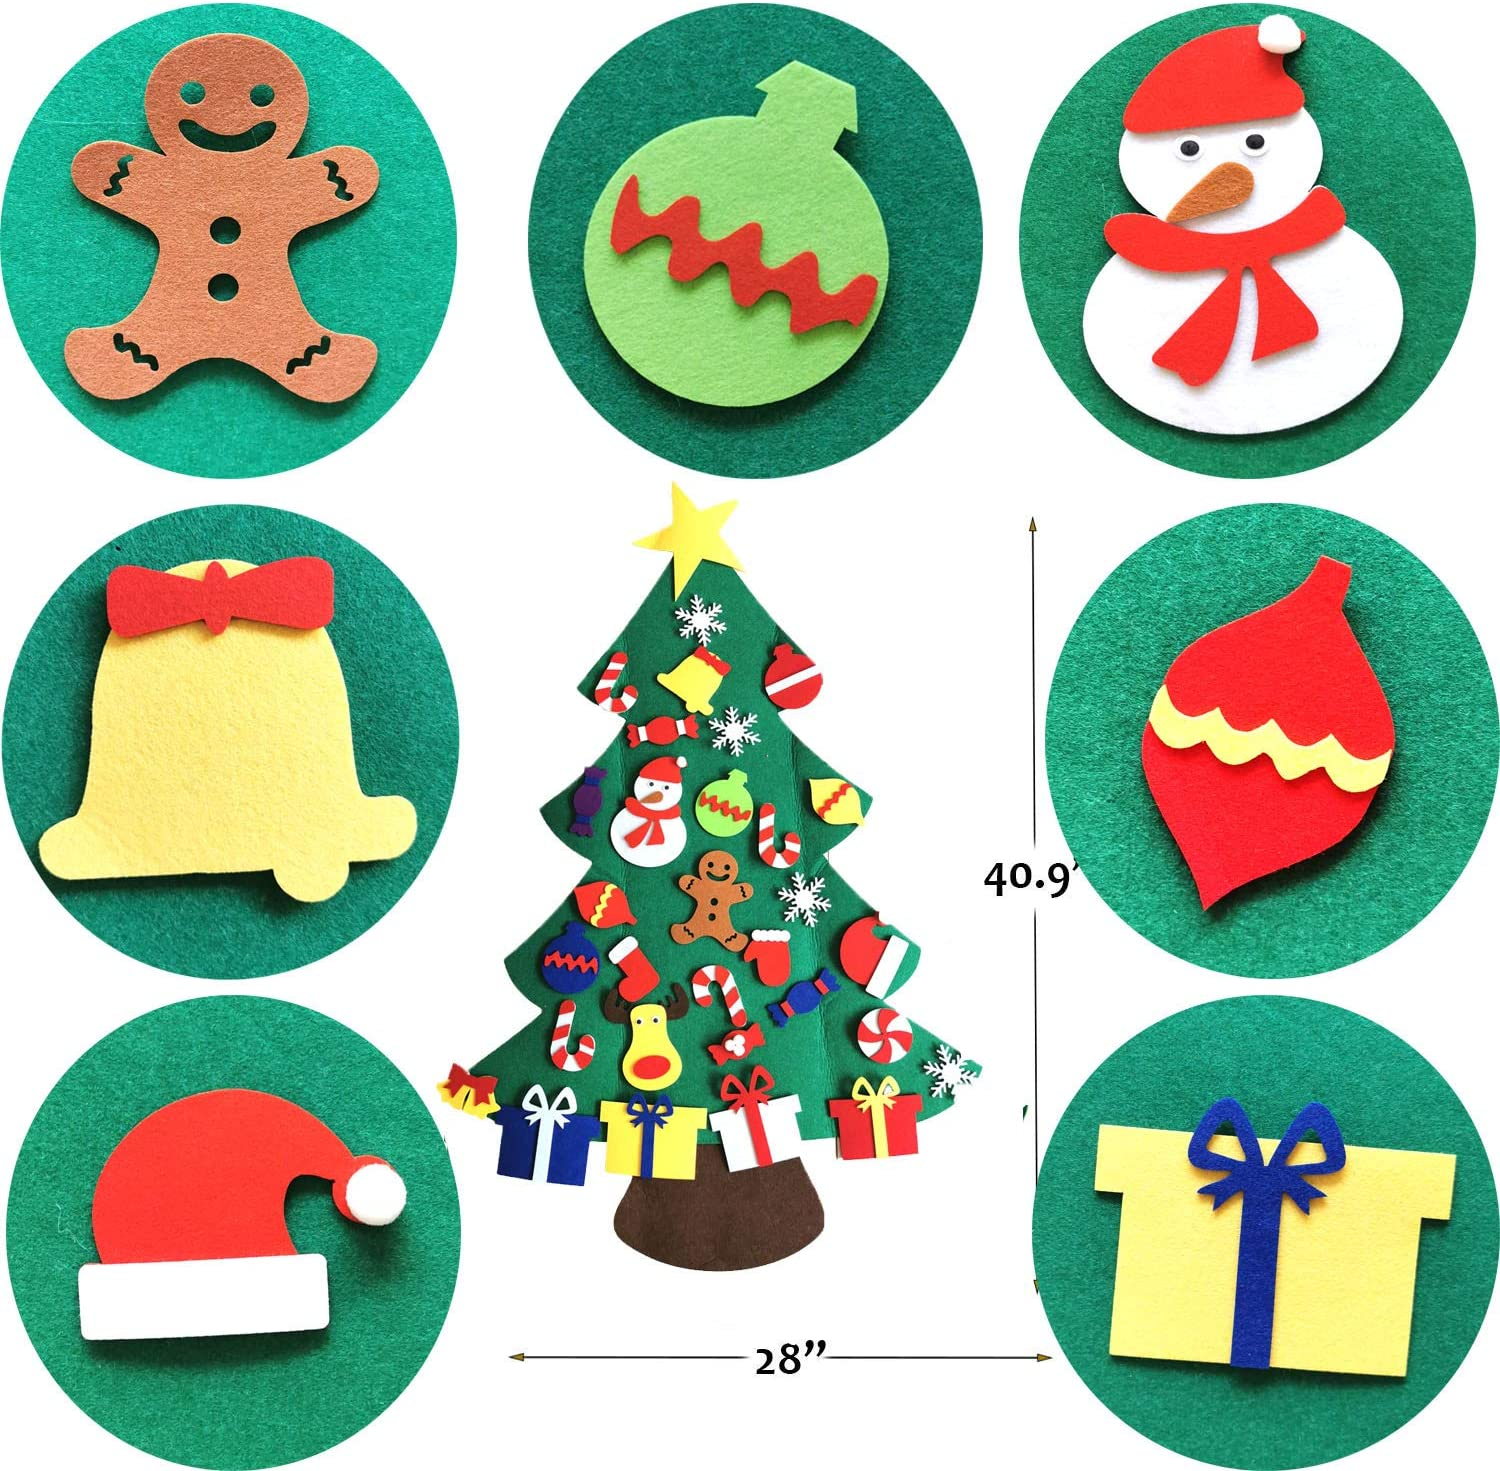 Mehome DIY Felt Christmas Tree with 31pcs Ornaments 31pcs Xmas Gifts for Kids New Year Handmade Christmas Door Wall Hanging Decorations